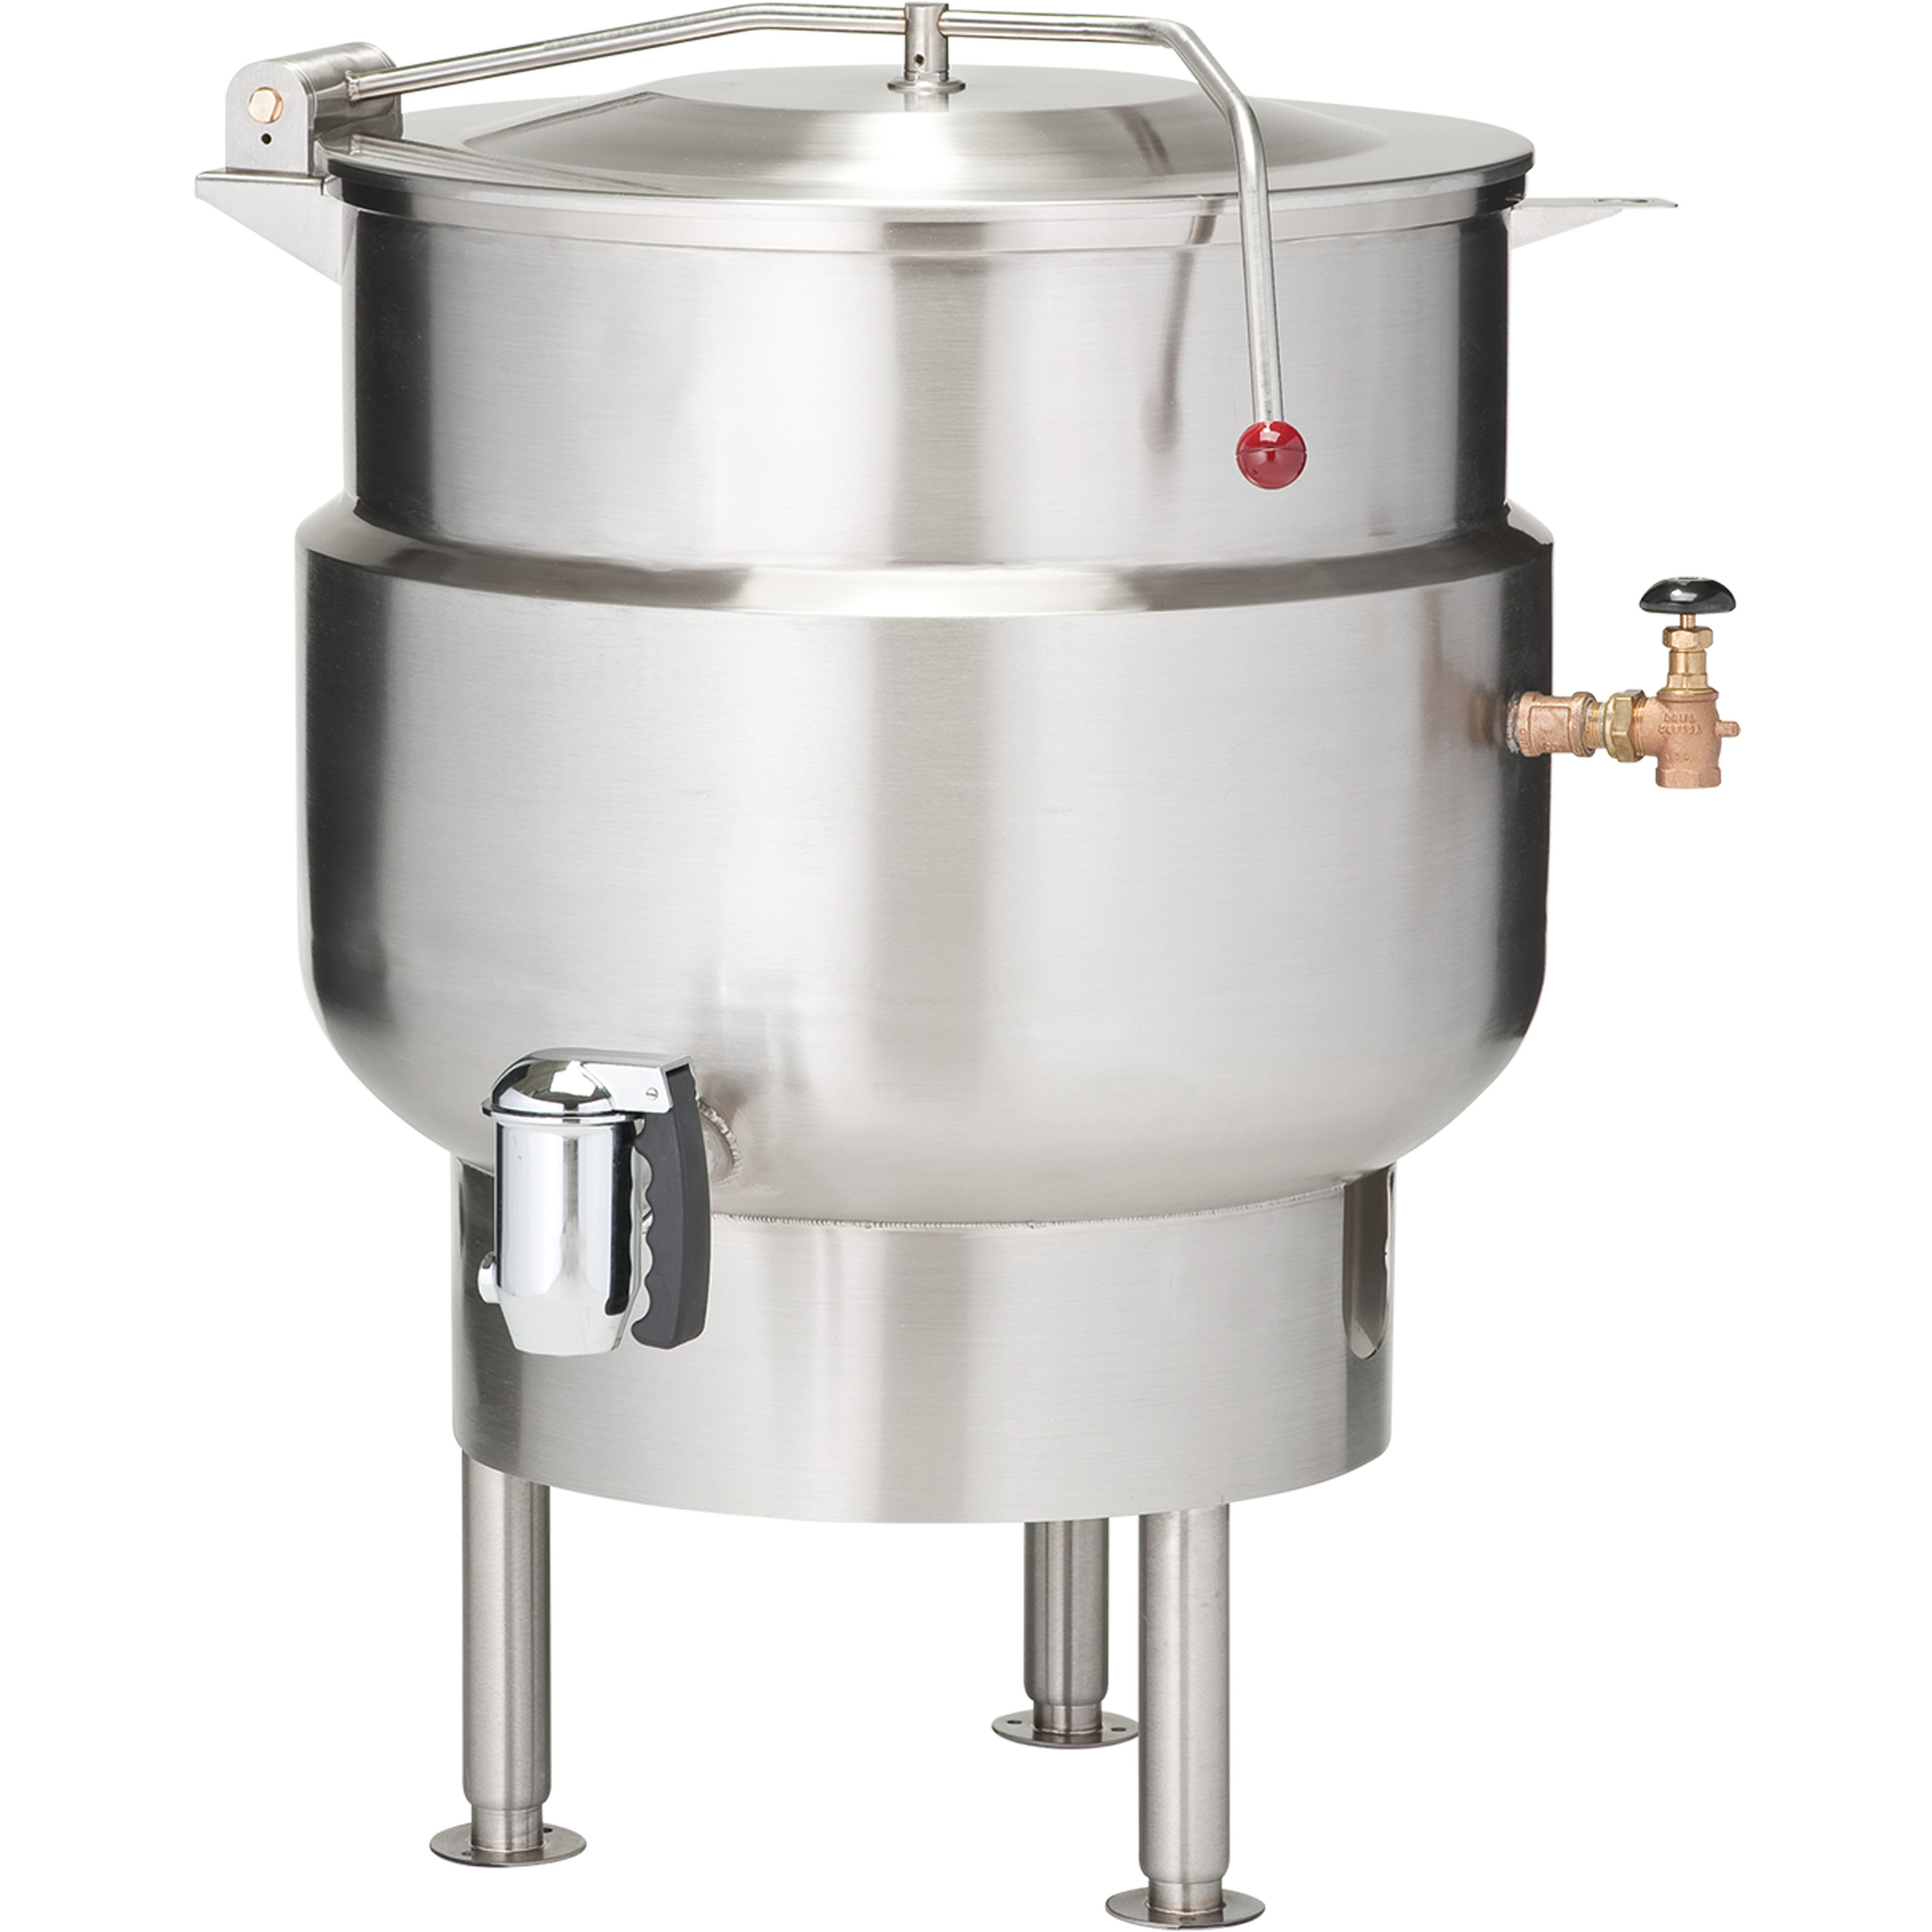 Vulcan K20DLT kettle, direct steam, tilting